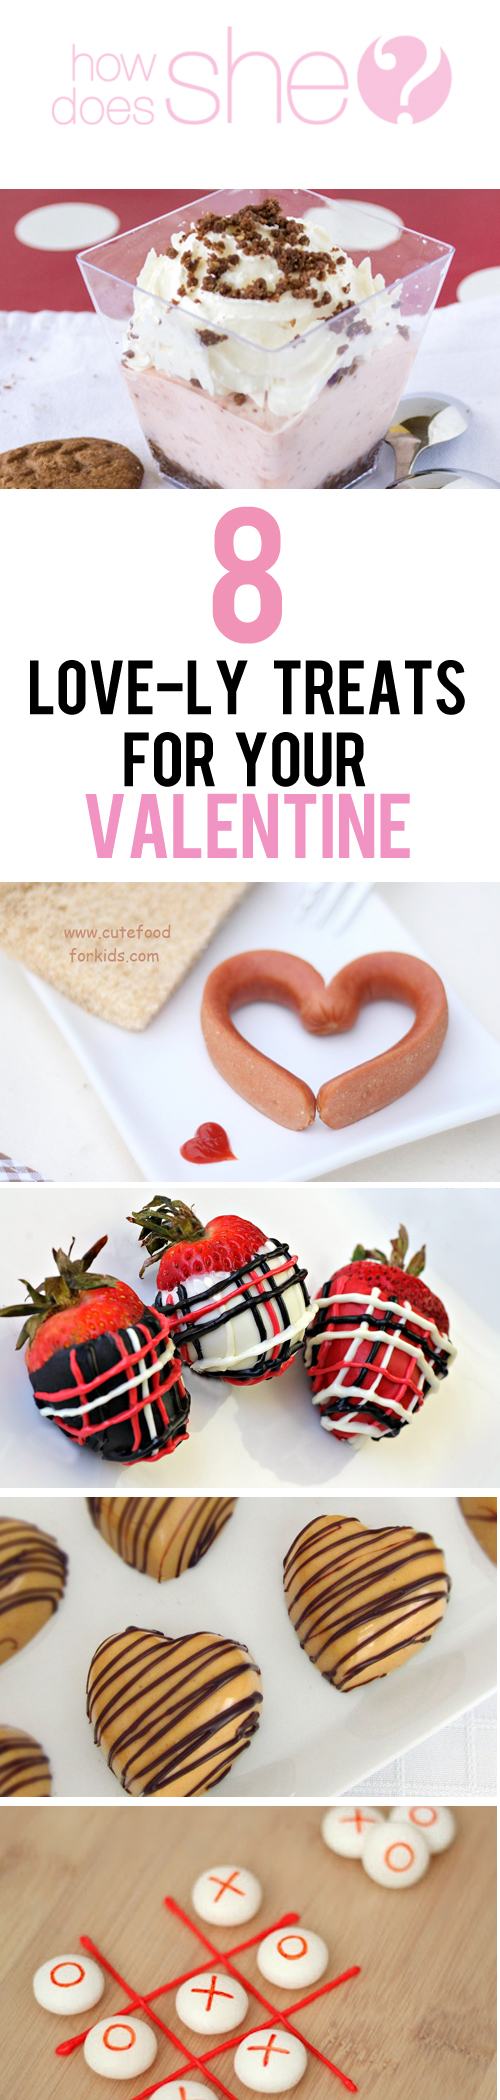 sweetheart recipes